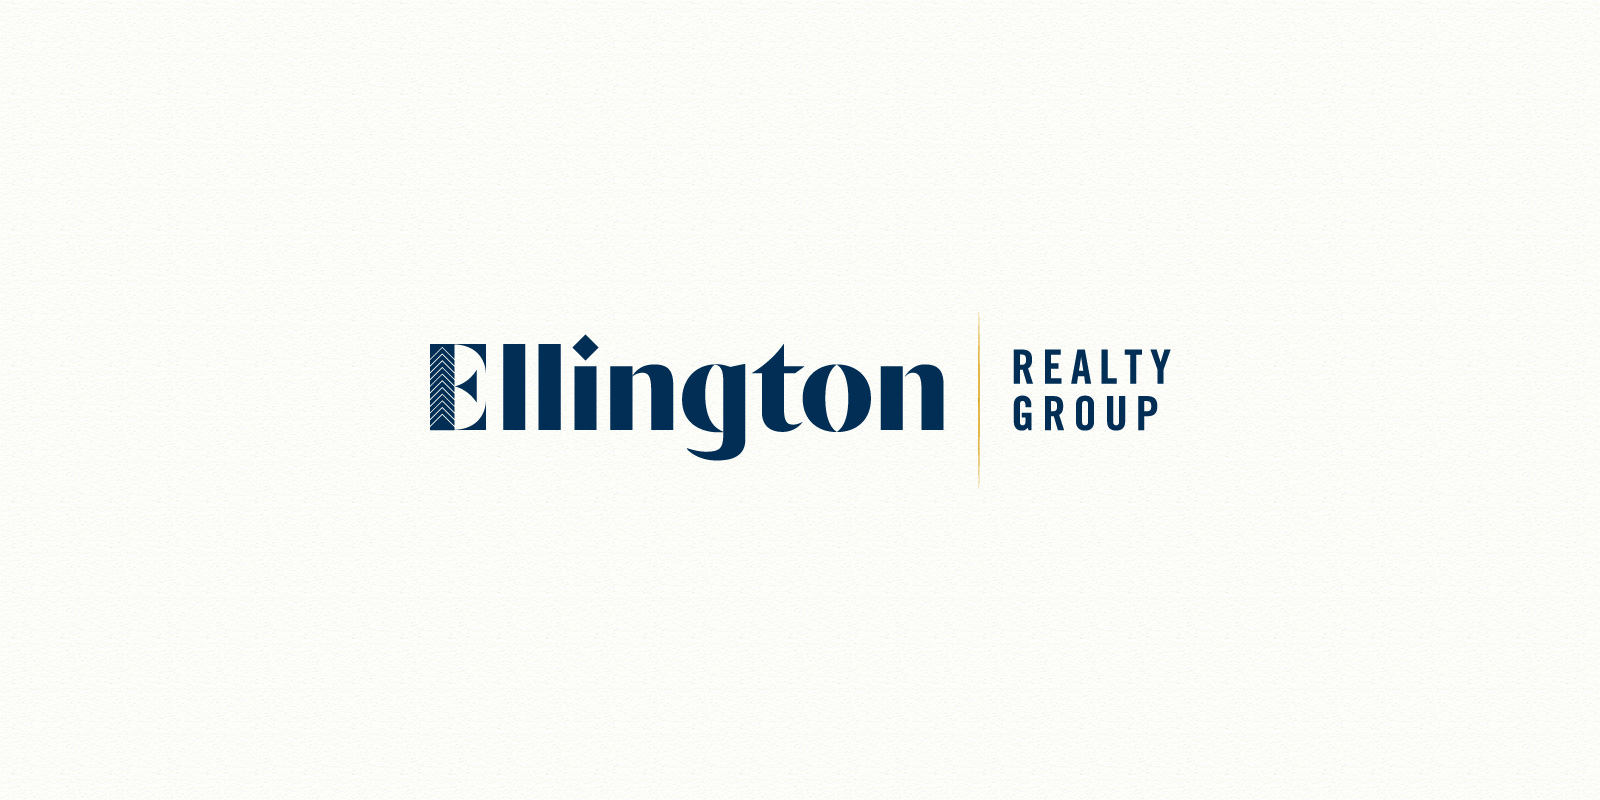 Ellington Realty Group logo in blue shown on off-white background